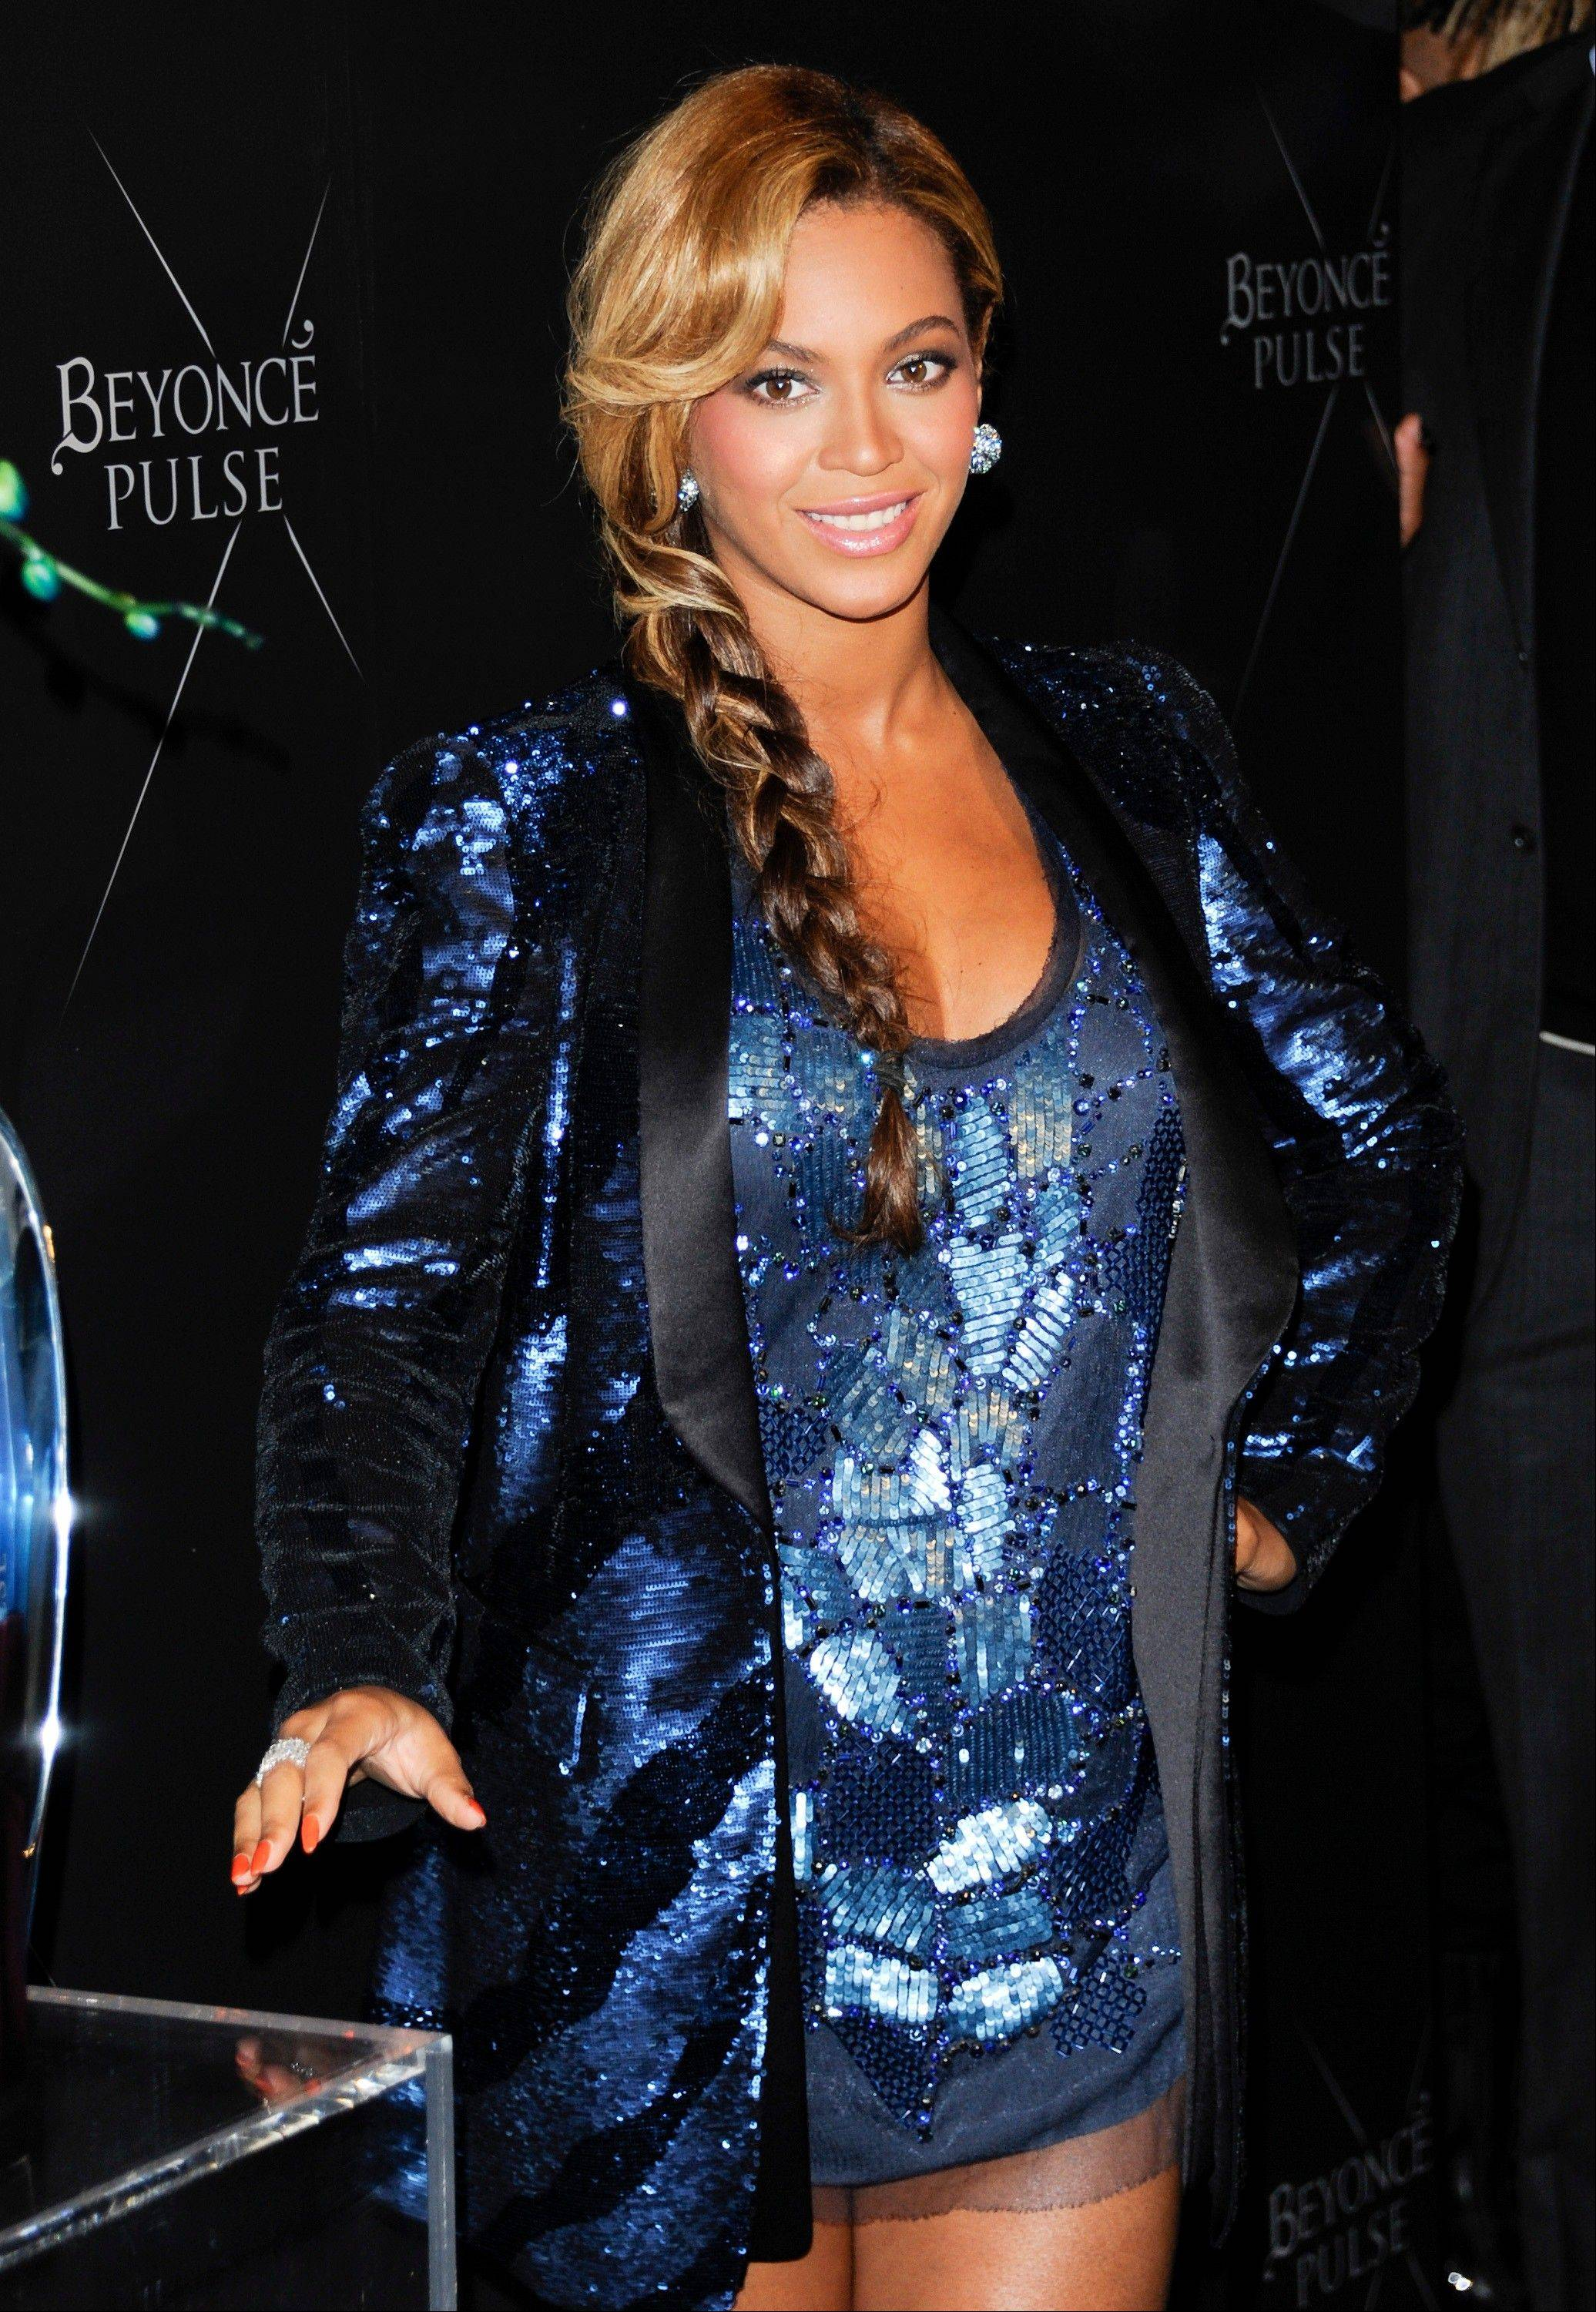 Singer Beyonce unveils her new fragrance �Pulse� at the Dream Hotel, in New York.